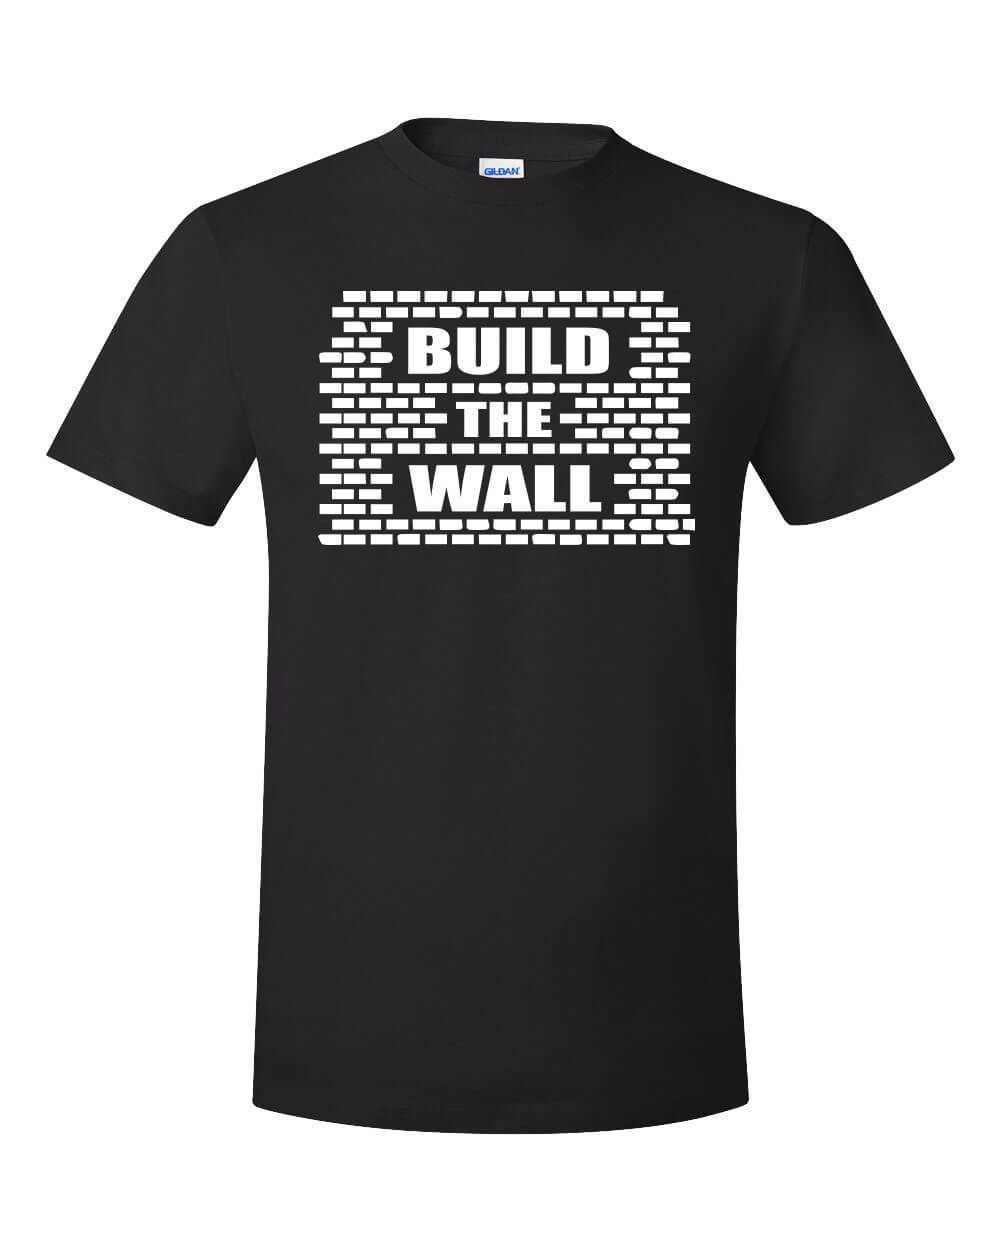 Build The Wall Trump Shirt Political Meme Top Kek Maga America First Usa Border 2019 New Fashion Top Men Design T-Shirt image